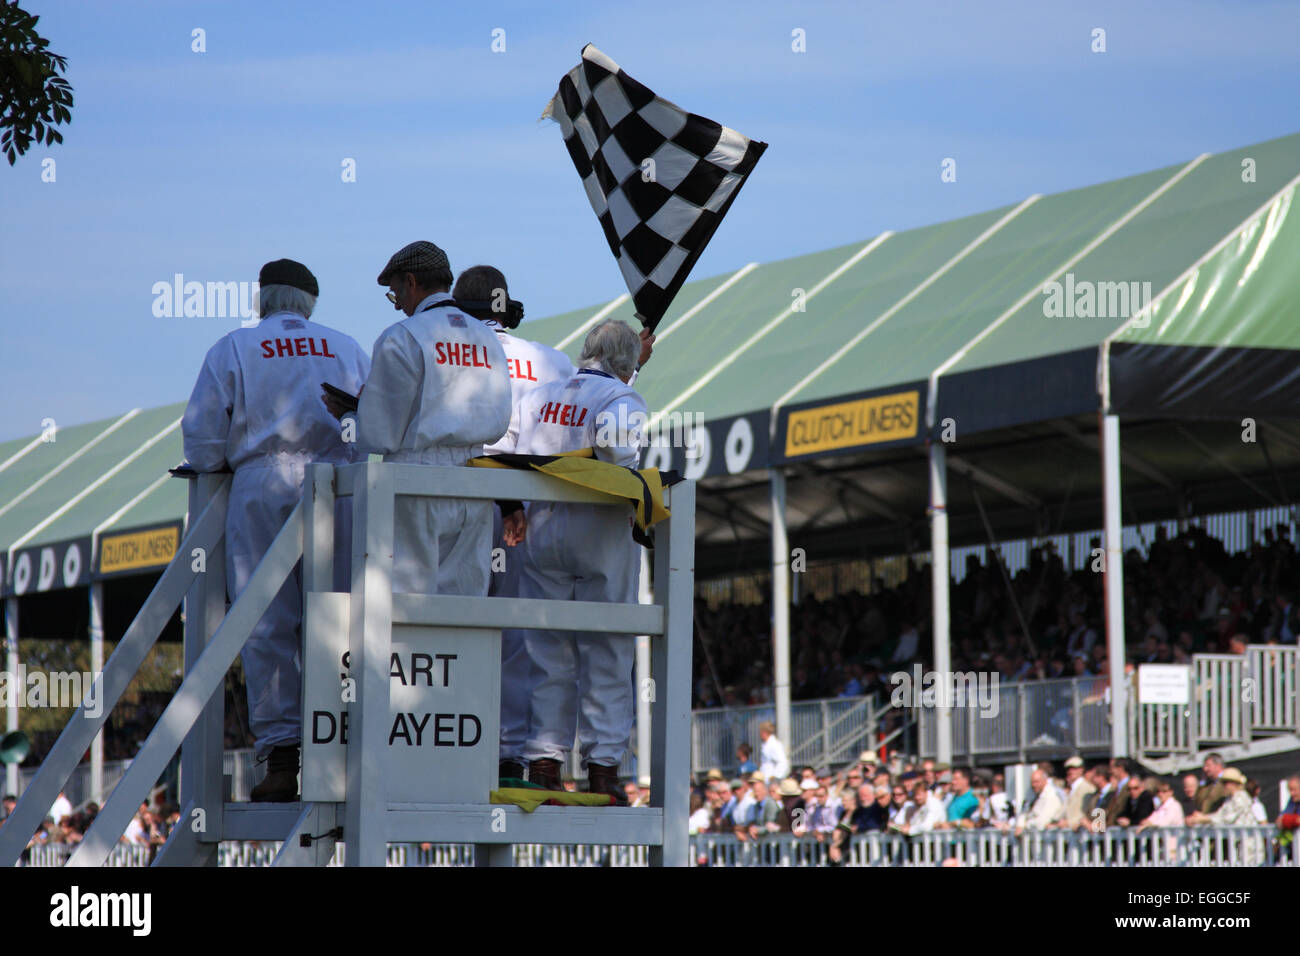 A welcome sight - the chequered flag is waved at the end of a race / Goodwood Revival / Goodwood / UK - Stock Image